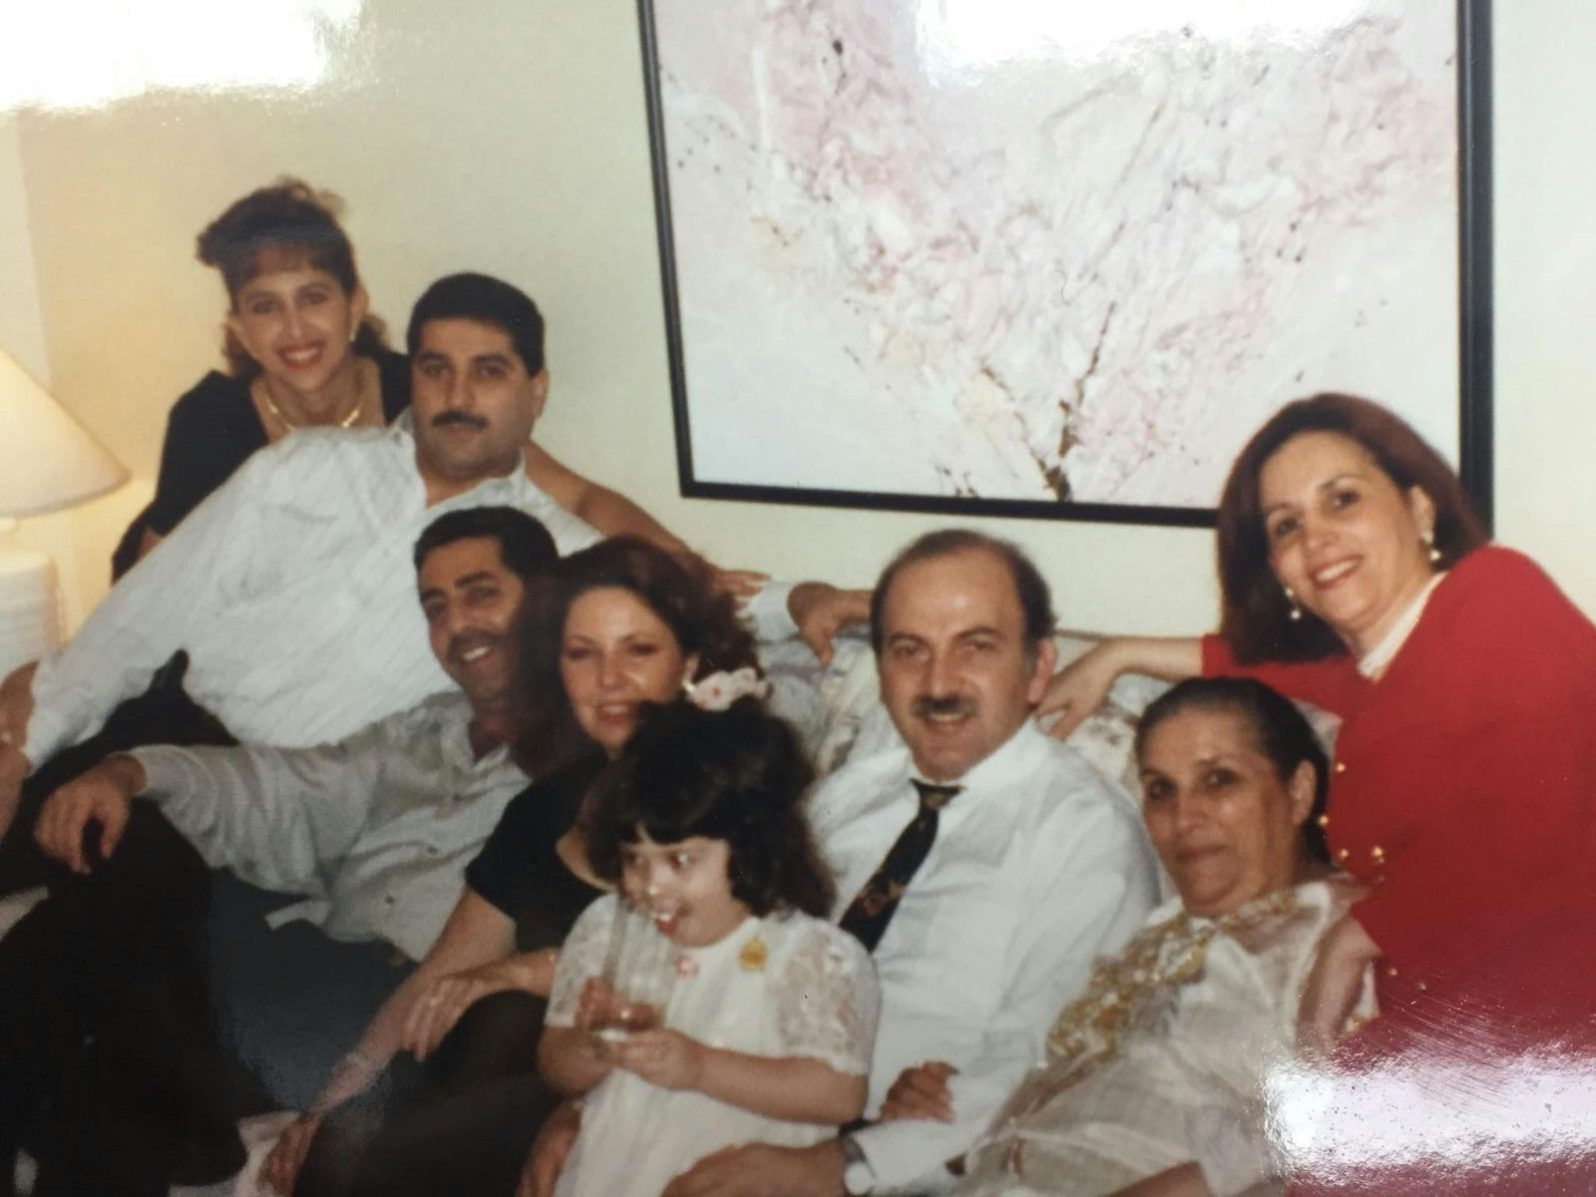 Jasmin and her father with Colombian, Syrian, and American members of the family